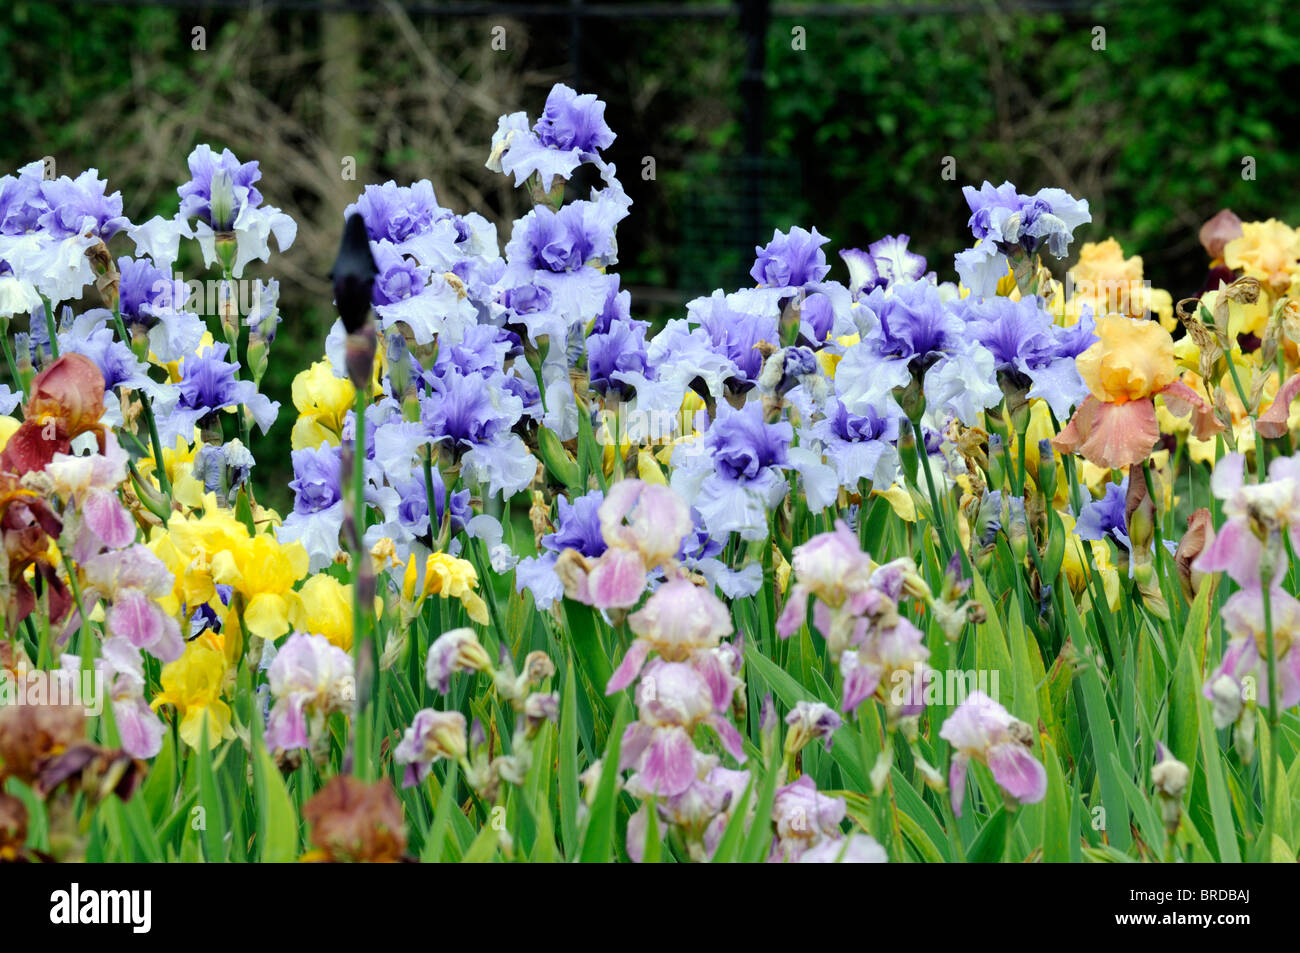 Tall Bearded Iris Irises Flowerbed Flowers Bloom Blossom Multiple